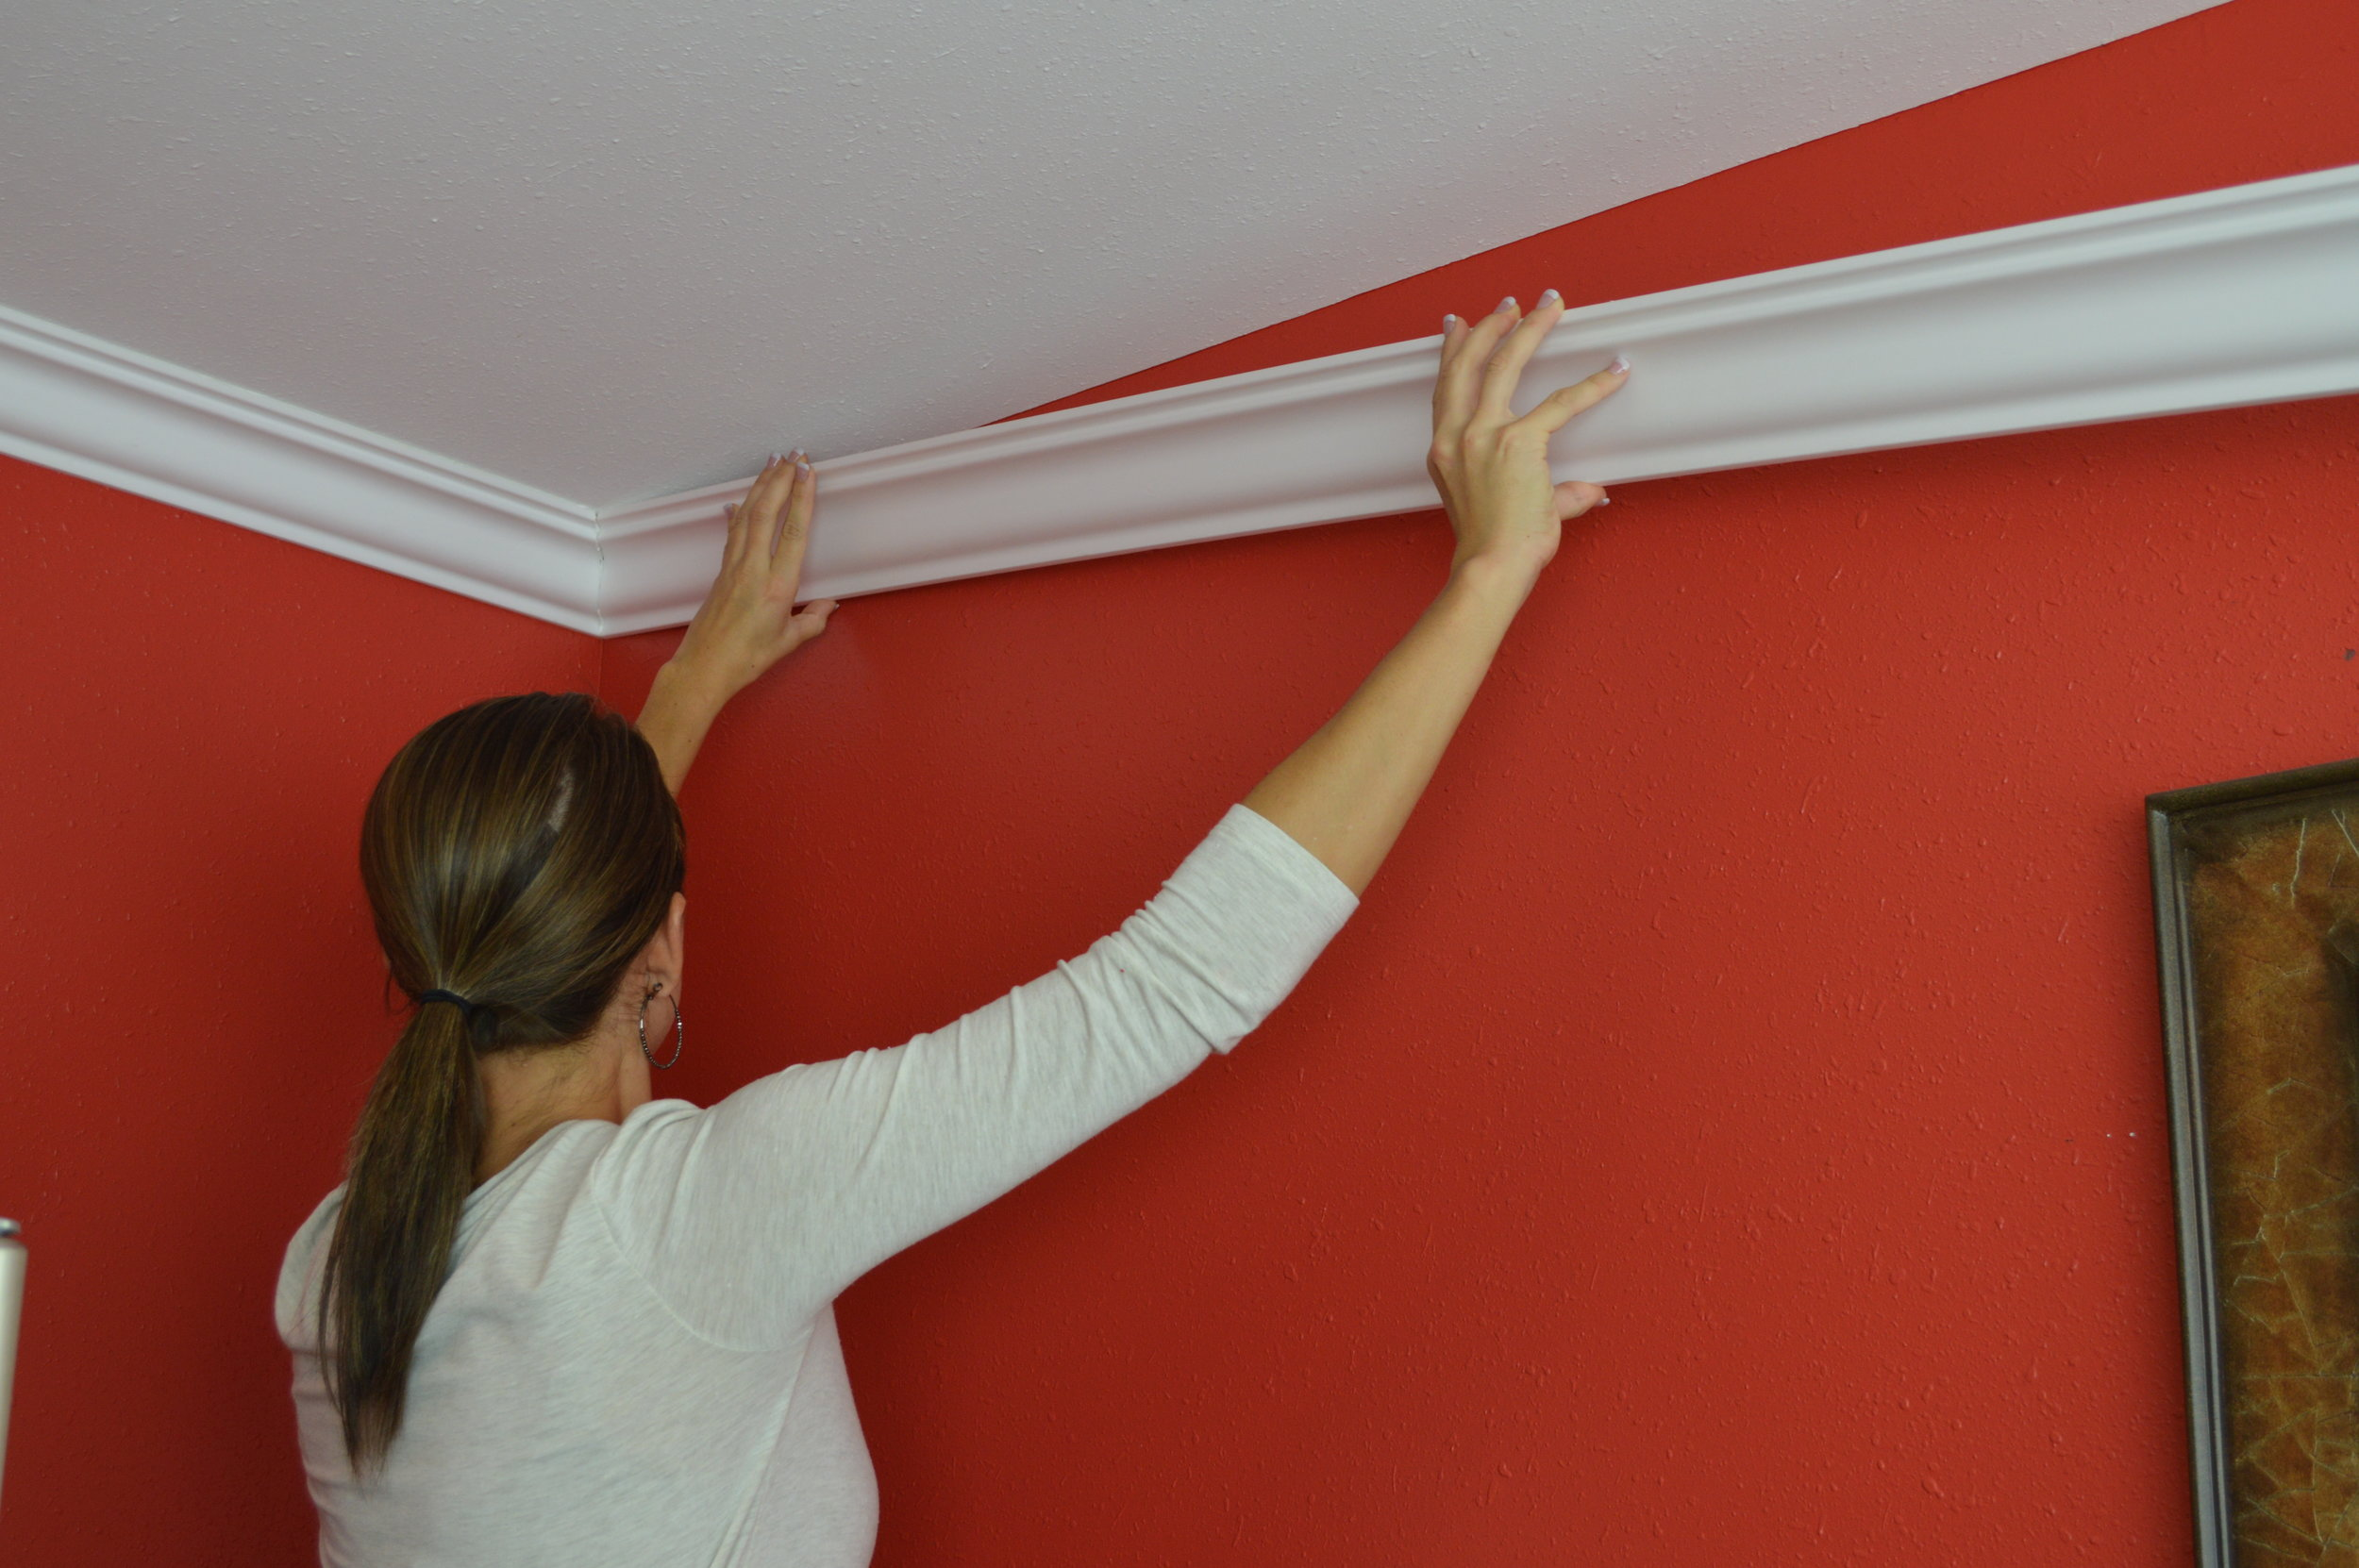 Nomastyl Crown Molding